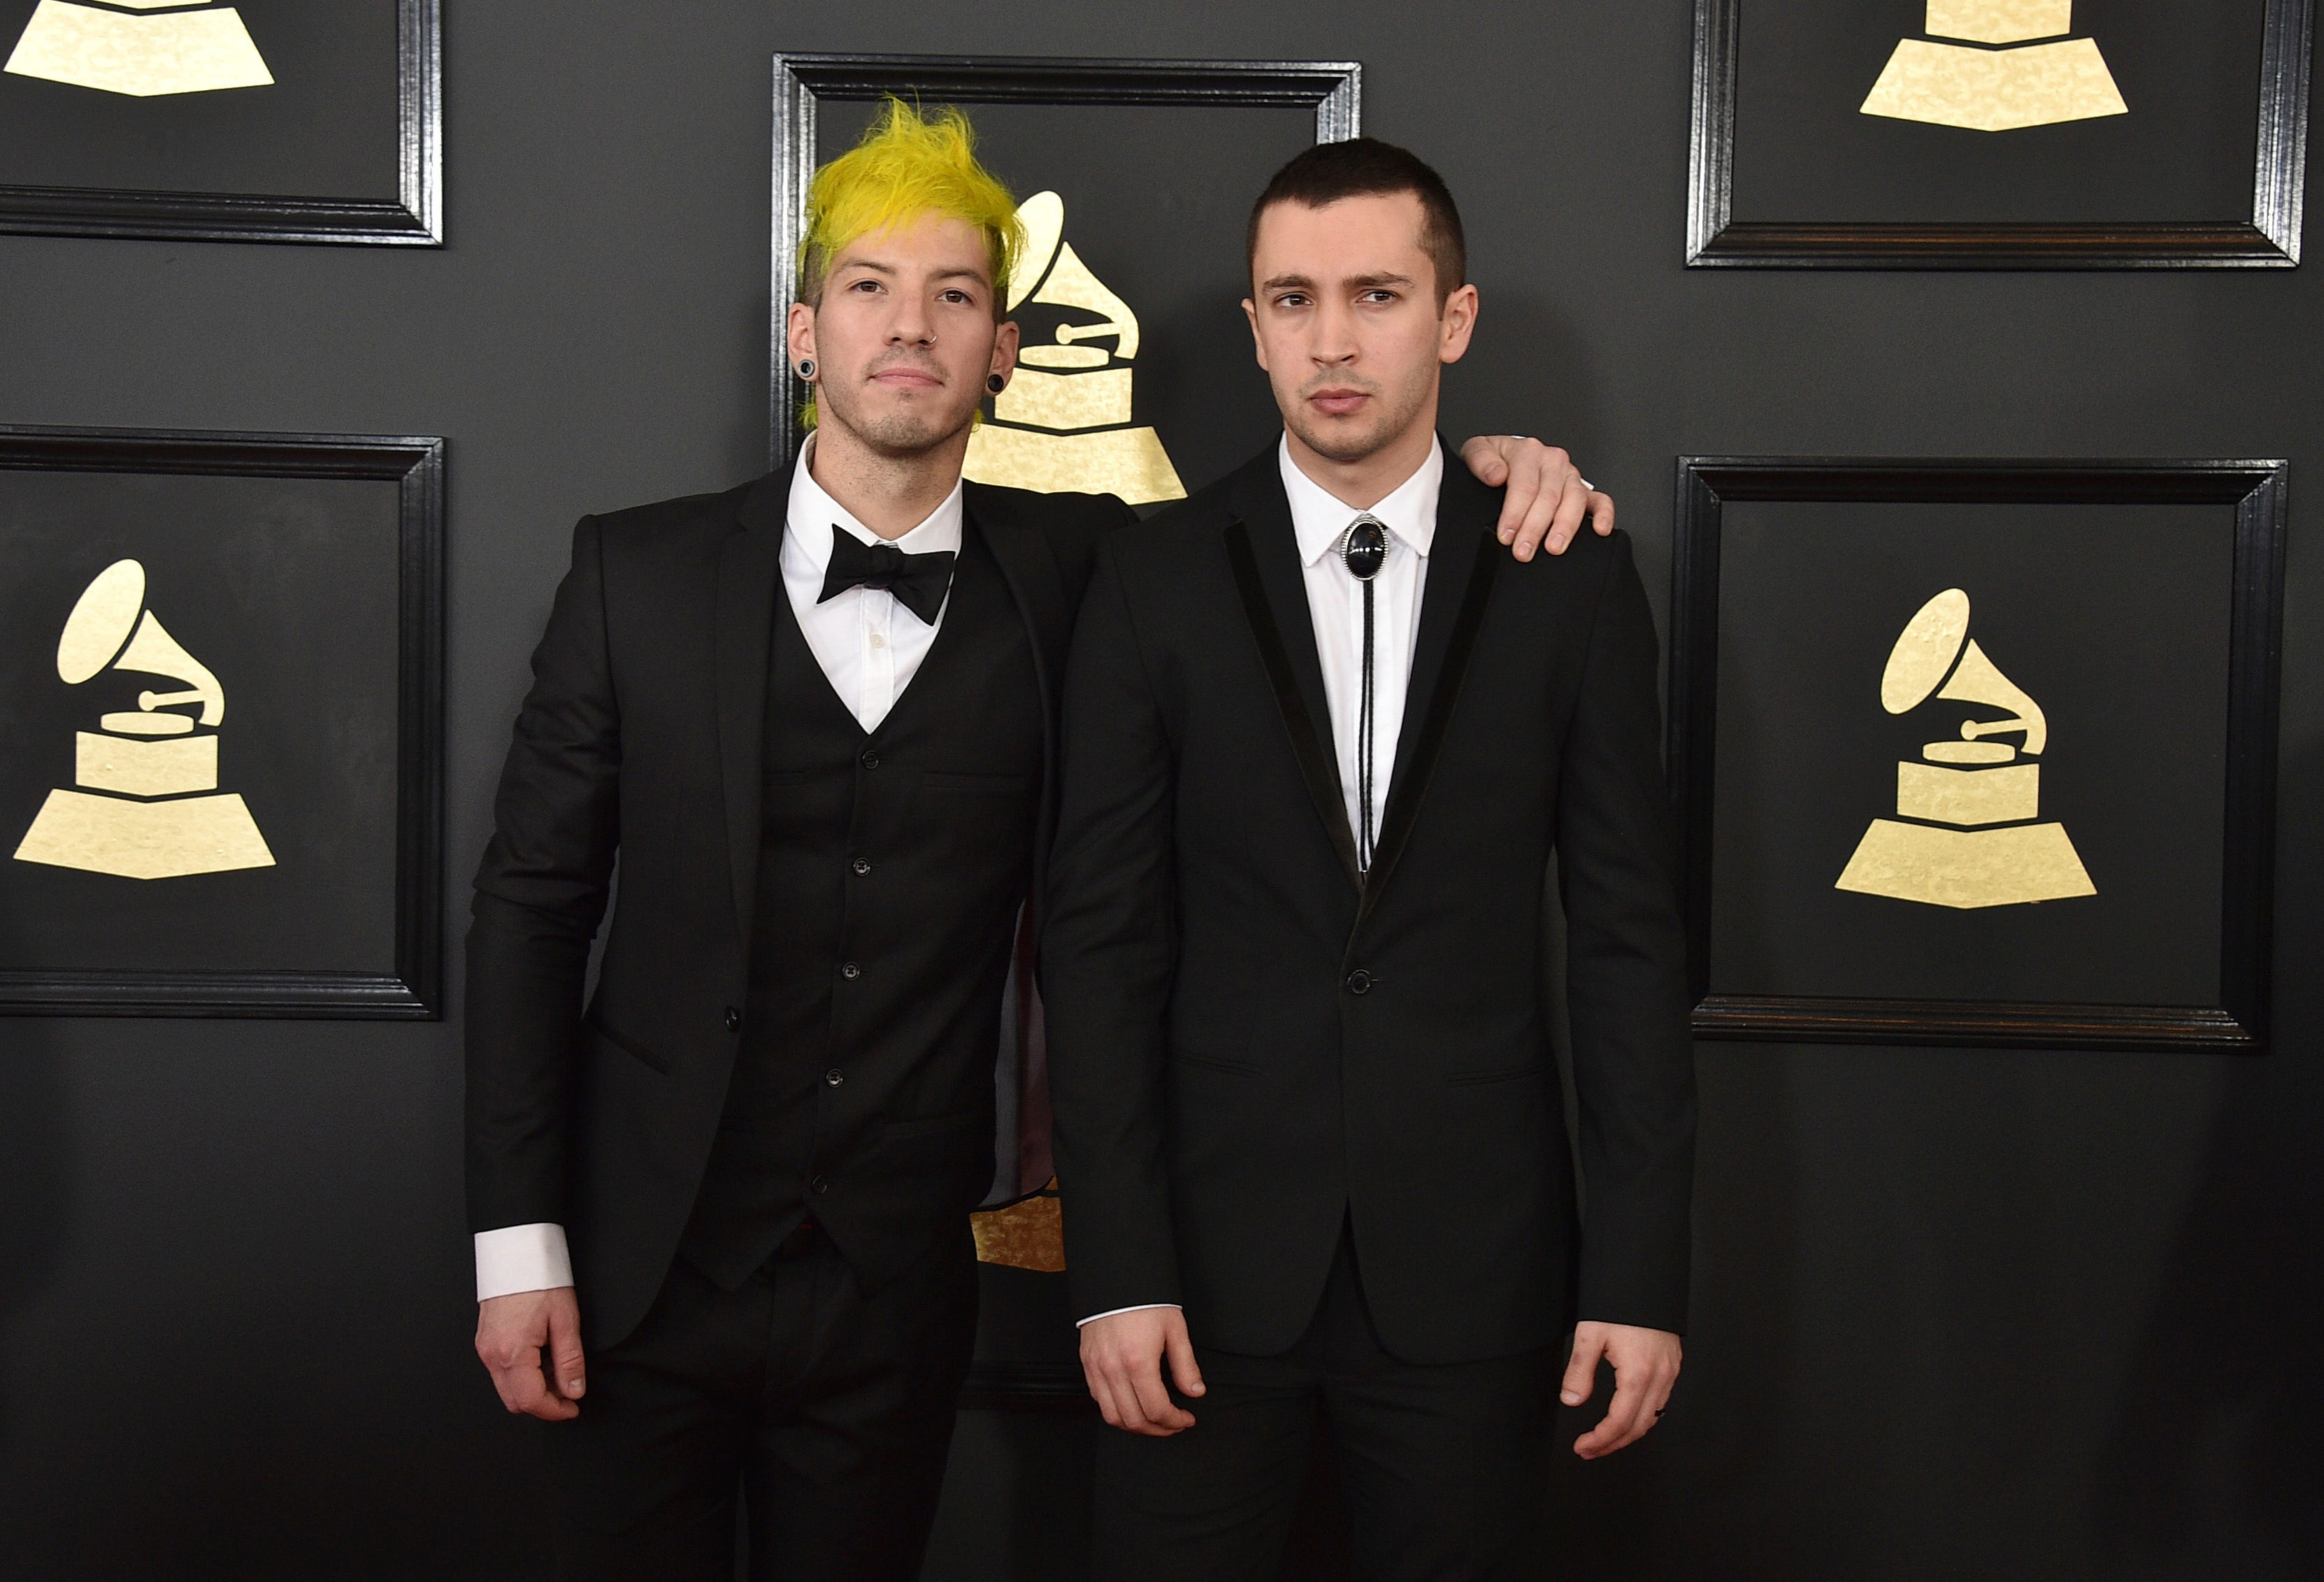 Josh Dun, left, and Tyler Joseph of the musical group Twenty One Pilots arrive at the 59th annual Grammy Awards at the Staples Center on Sunday, Feb. 12, 2017, in Los Angeles.